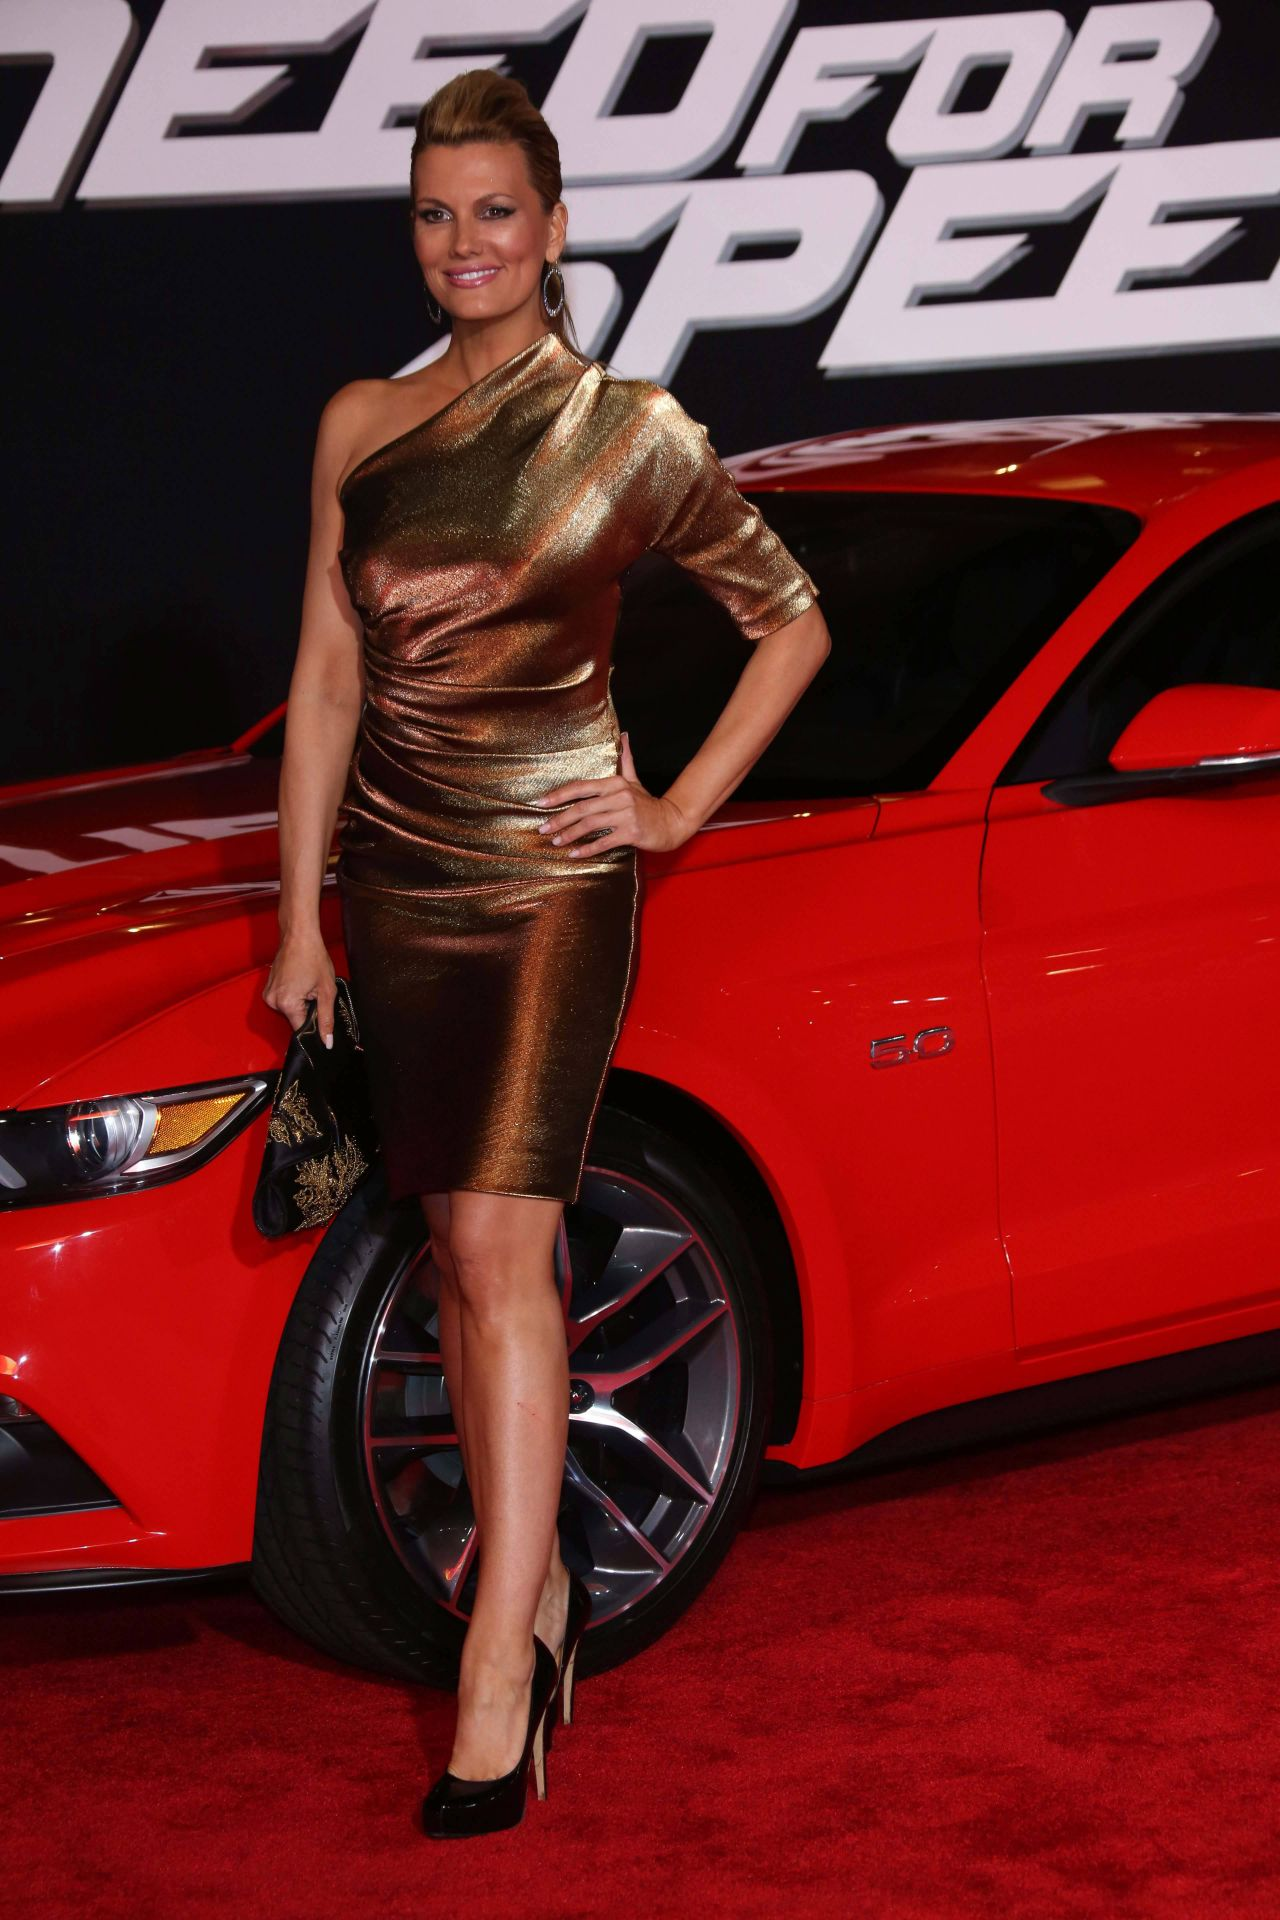 Courtney Hansen On Red Carpet Need For Speed Premiere